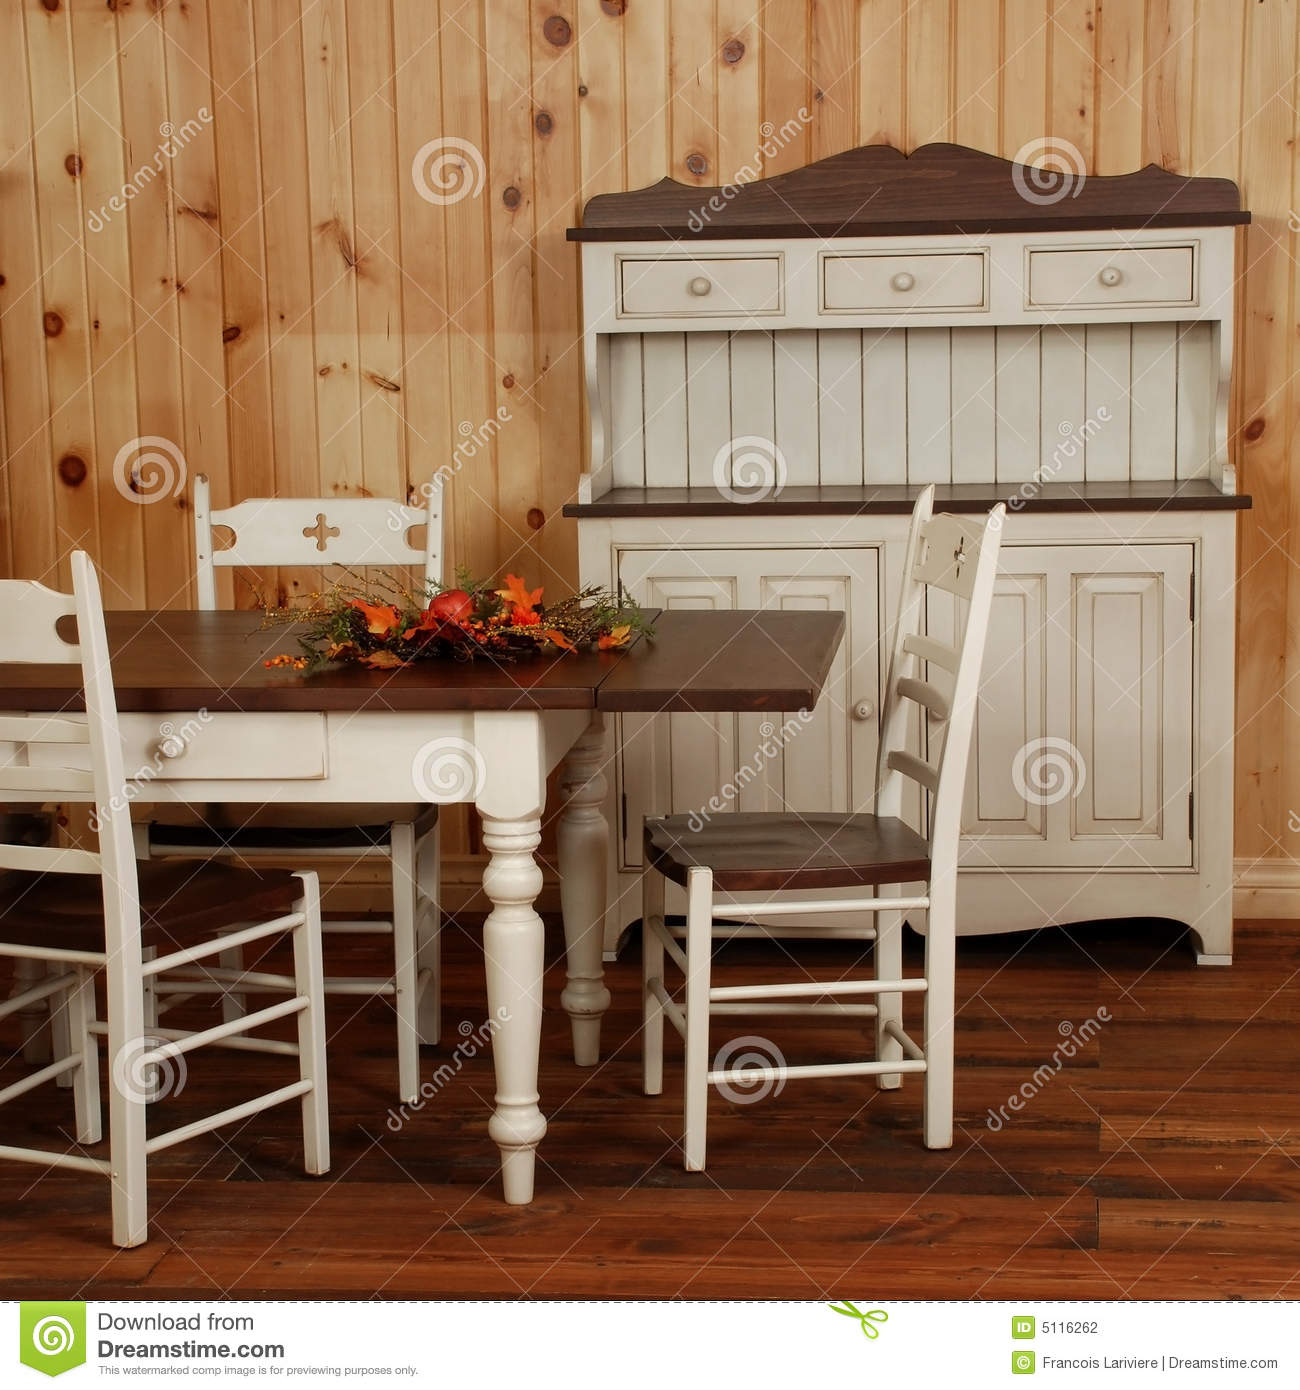 Old Pine Wood Kitchen Set Stock Photo Image Of Change 5116262